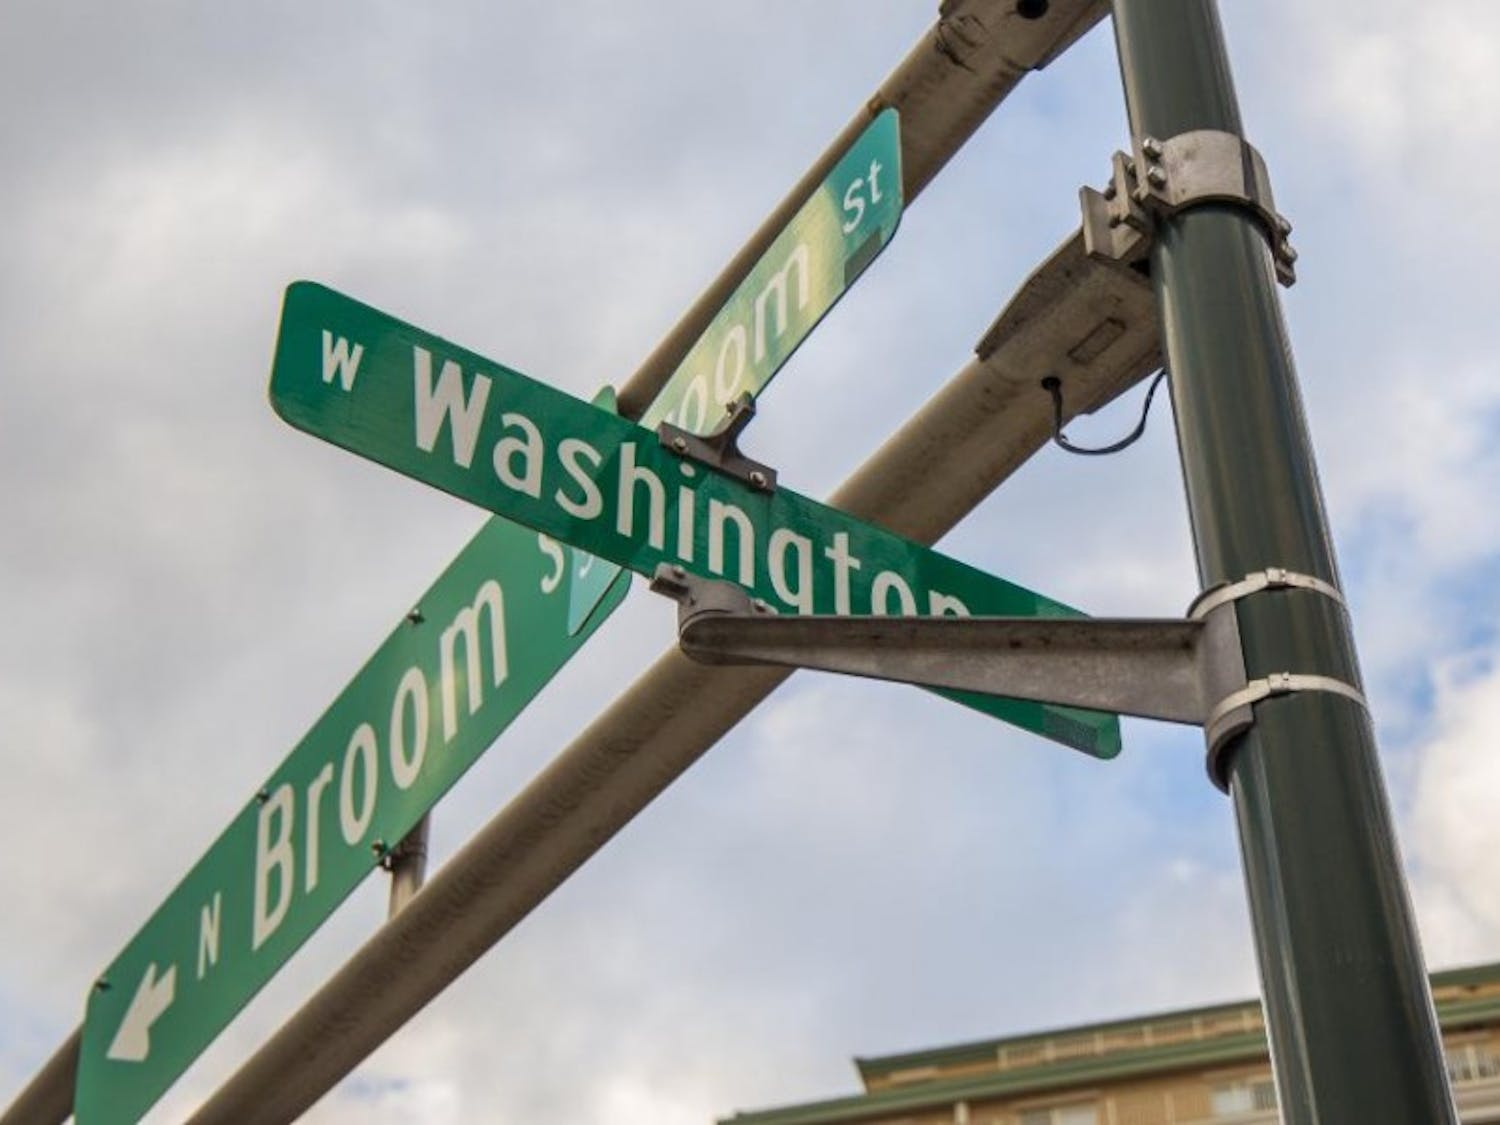 The development would be located on the northwest corner of Broom Street and West Washington Avenue.